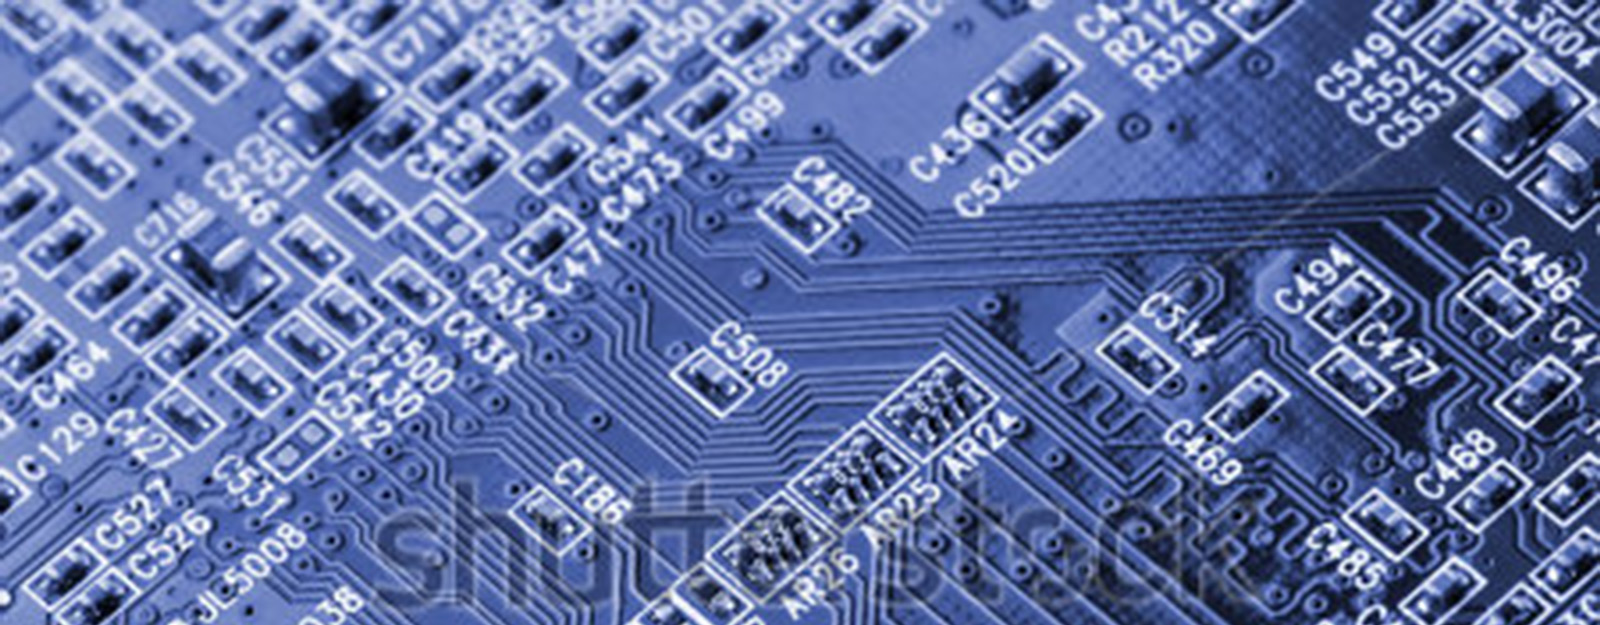 Certification 6 - Electronic Manufacturing Services | Carlton Industries